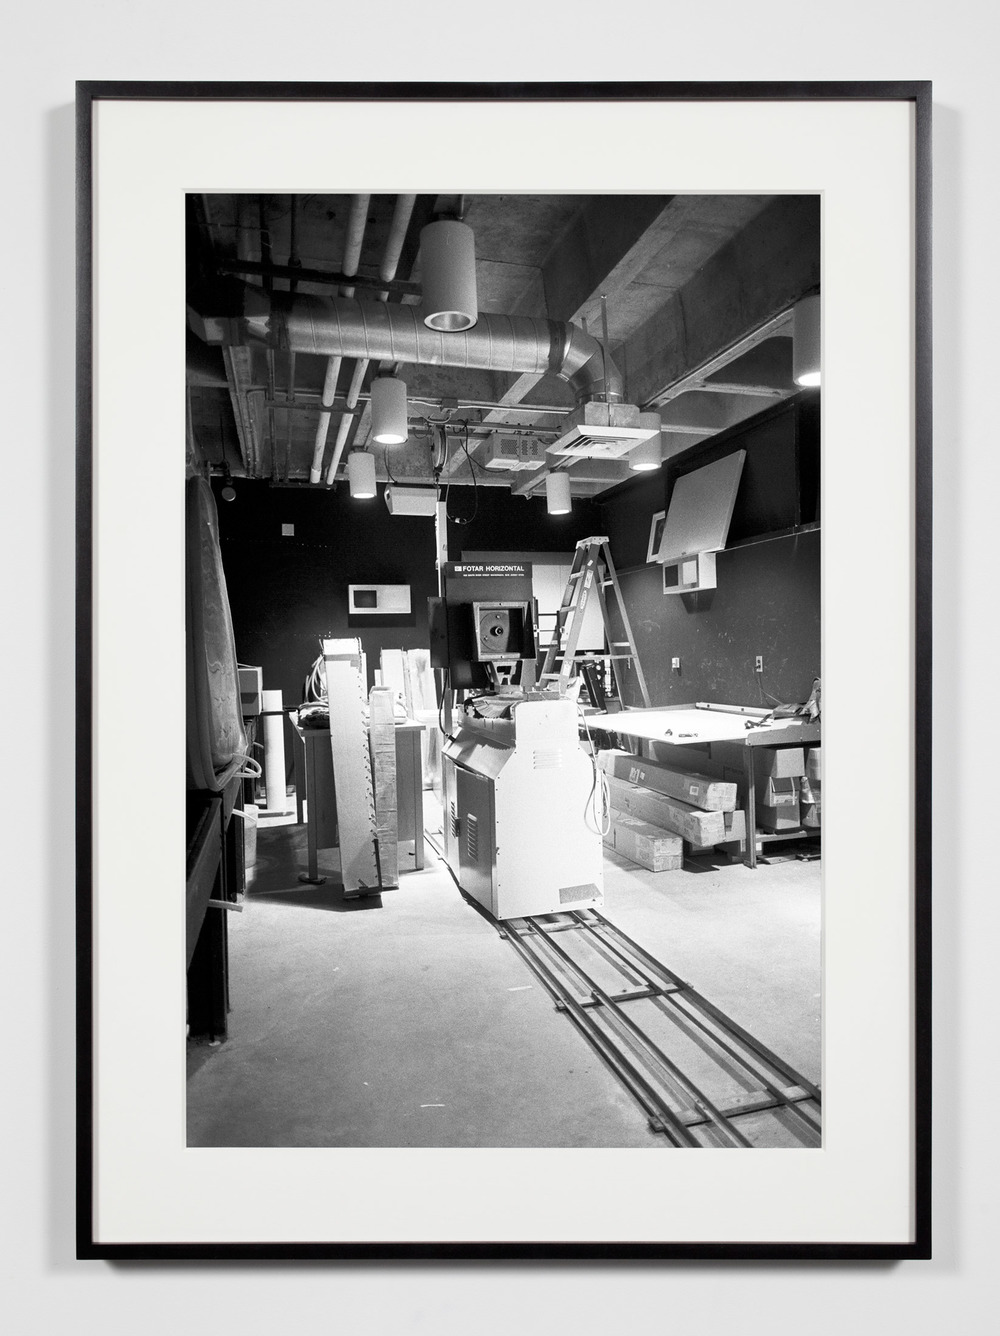 8 x 10 Horizontal Enlarger (Fotar), Irvine, California, July 18, 2008     2008   Epson Ultrachrome K3 archival ink jet print on Hahnemühle Photo Rag paper  36 3/8 x 26 3/8 inches   Industrial Portraits, 2008–